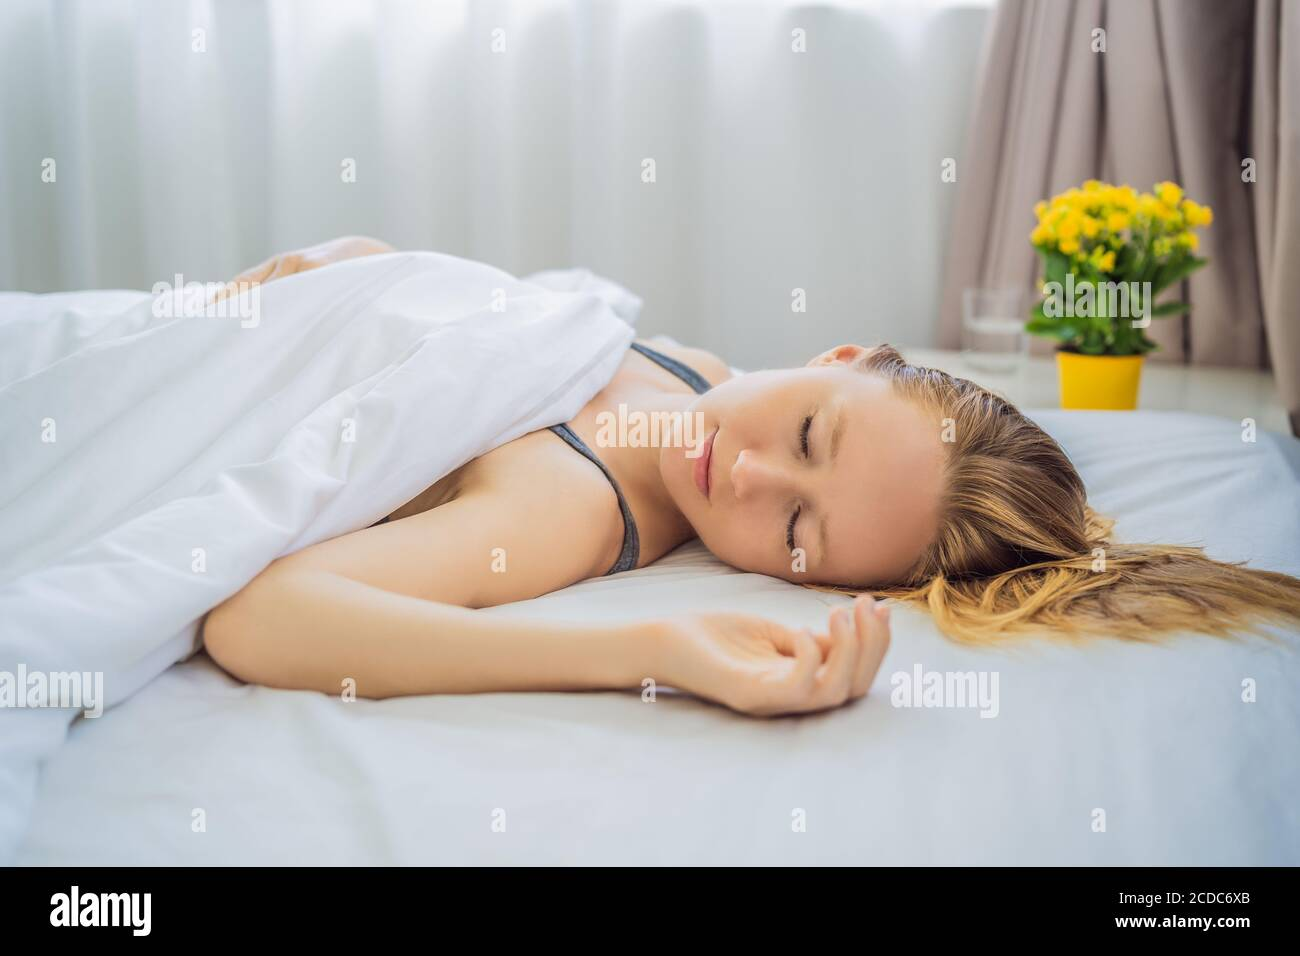 https www alamy com sleep without a pillow young woman sleeping in bed without a pillow portrait of beautiful female resting on comfortable bed without a pillow in image369677123 html